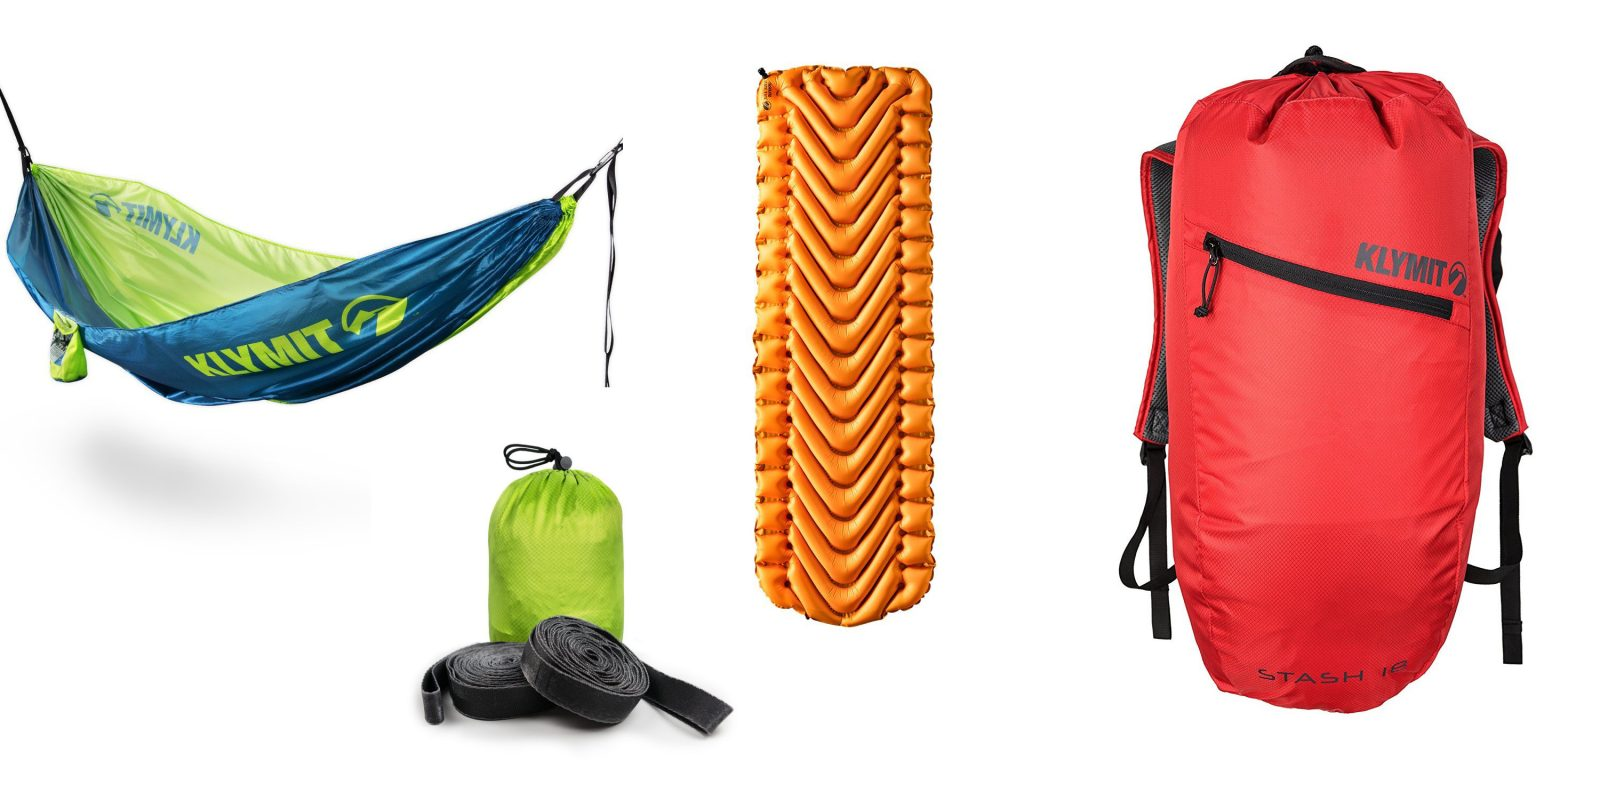 Amazon has 40% off Klymit camping gear from $14: hammocks, backpacks, sleeping bags, more